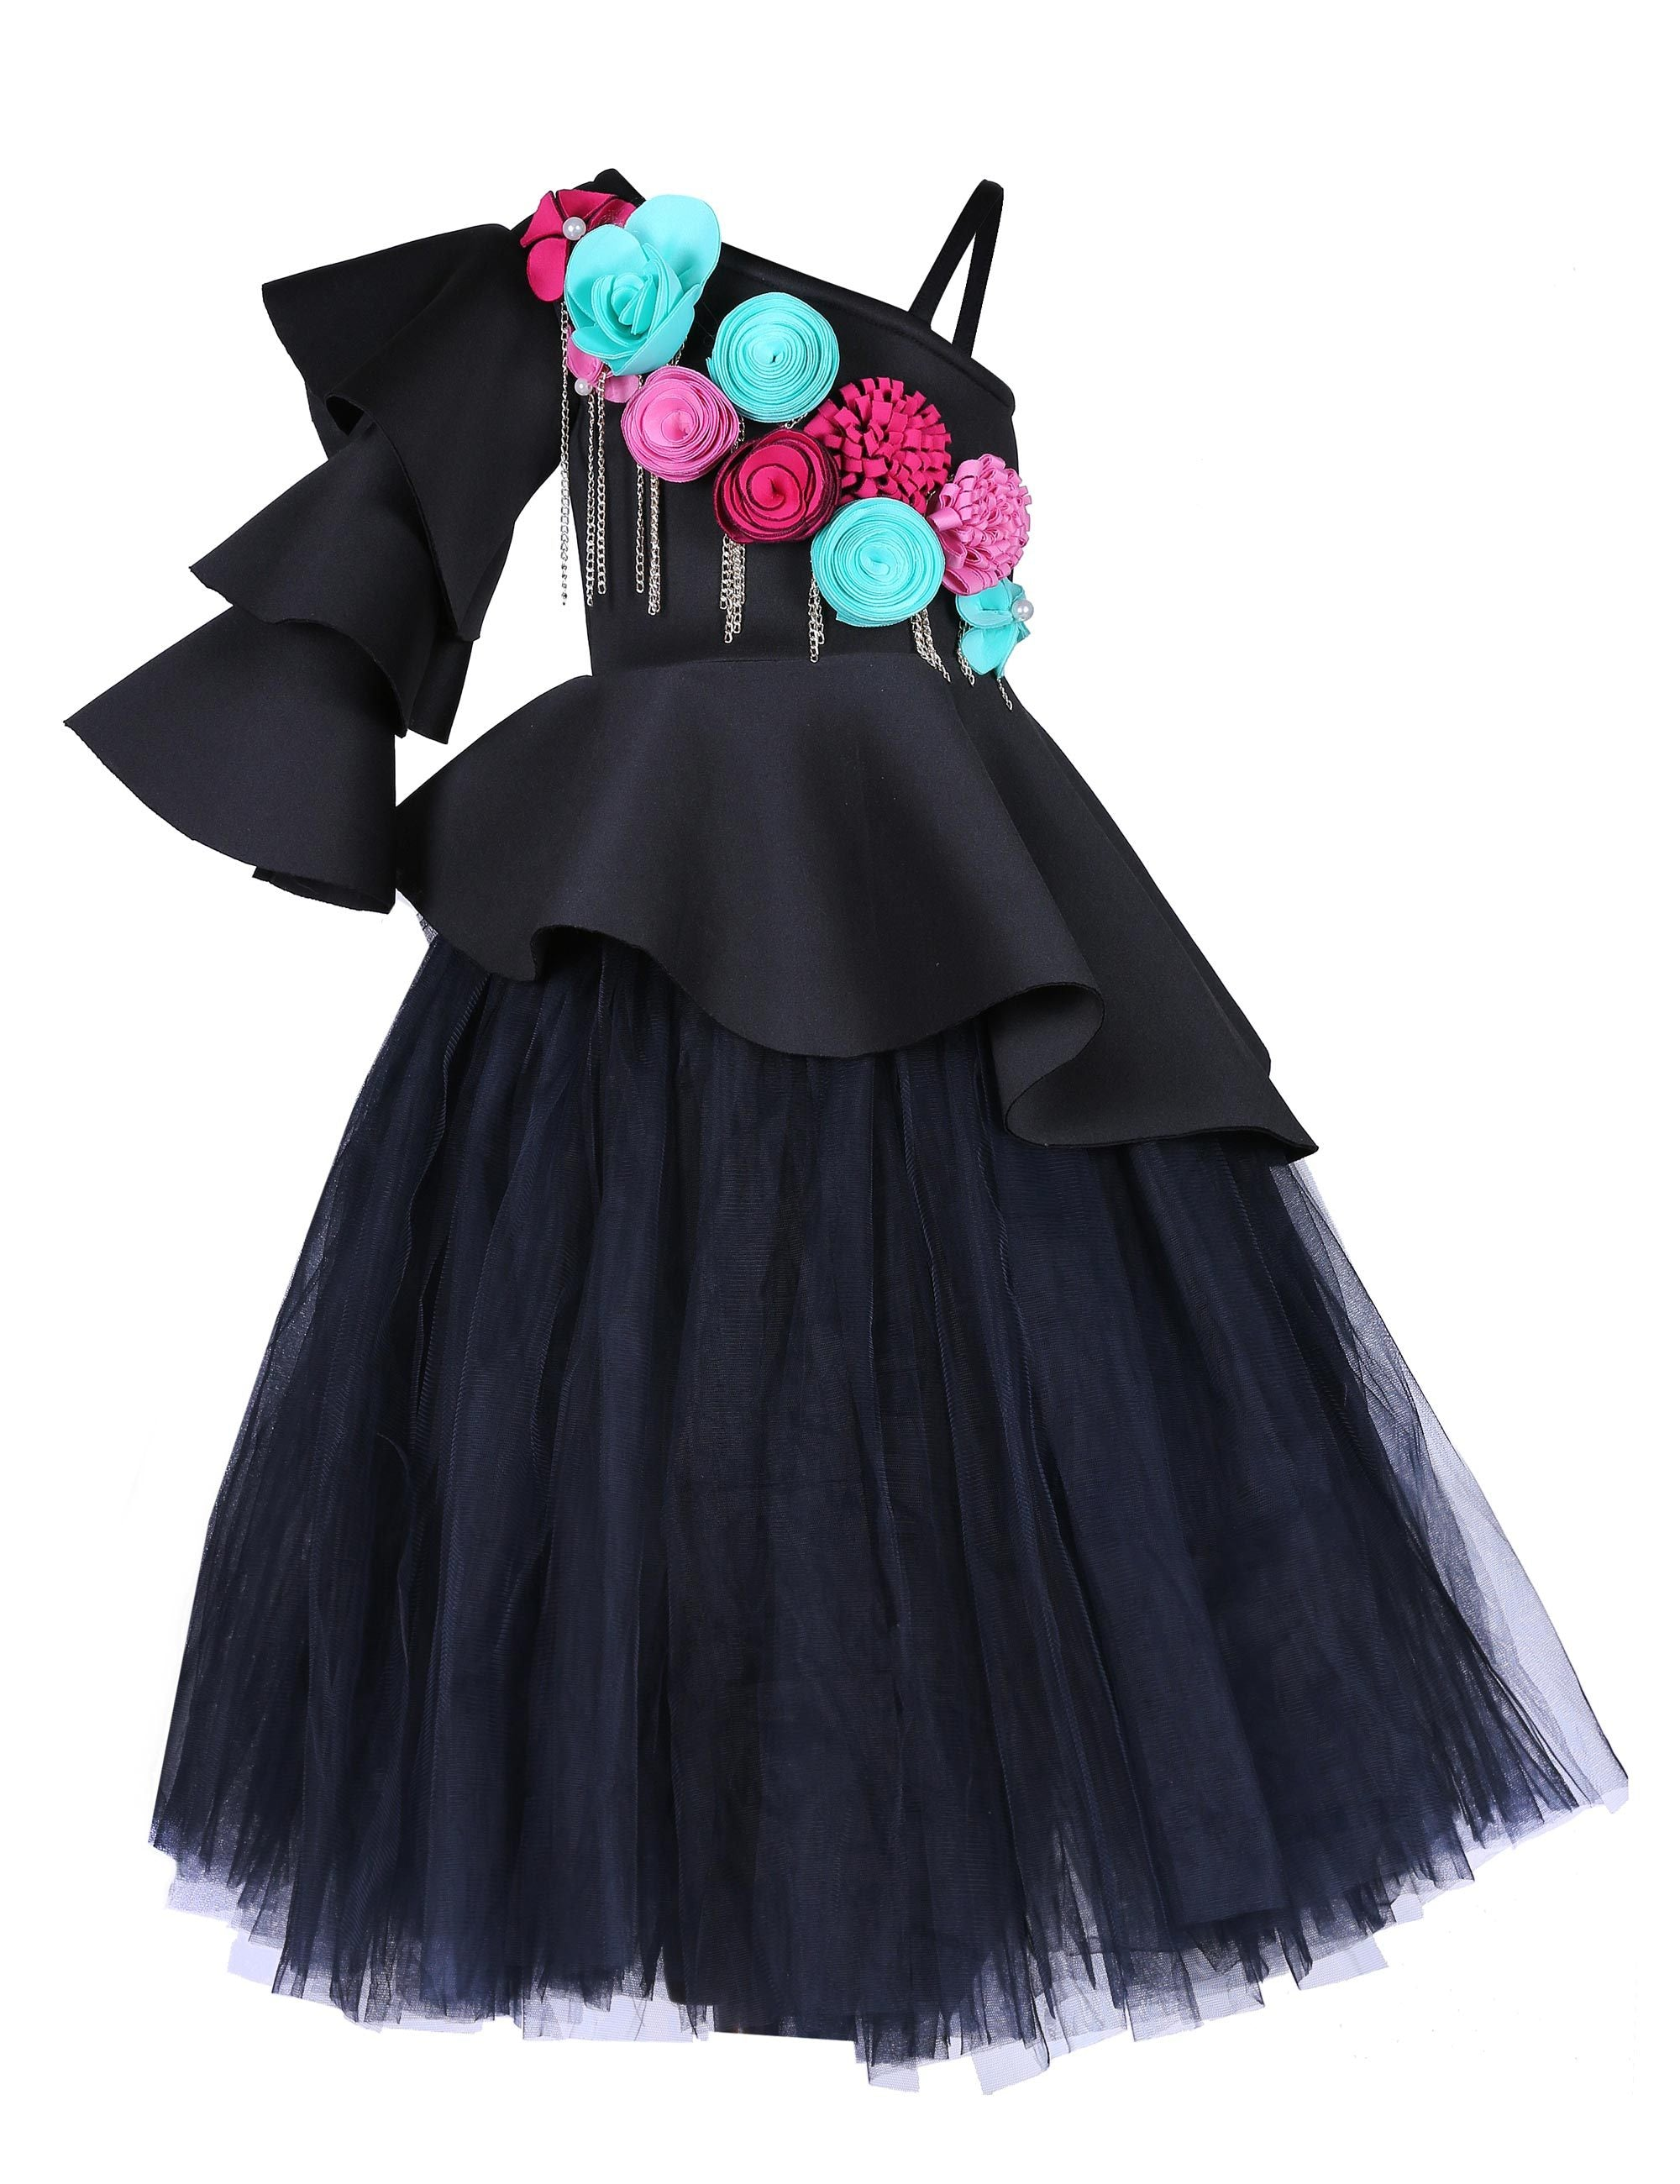 Black Triple Layered Corset and Tutu Skirt Gown for Girls